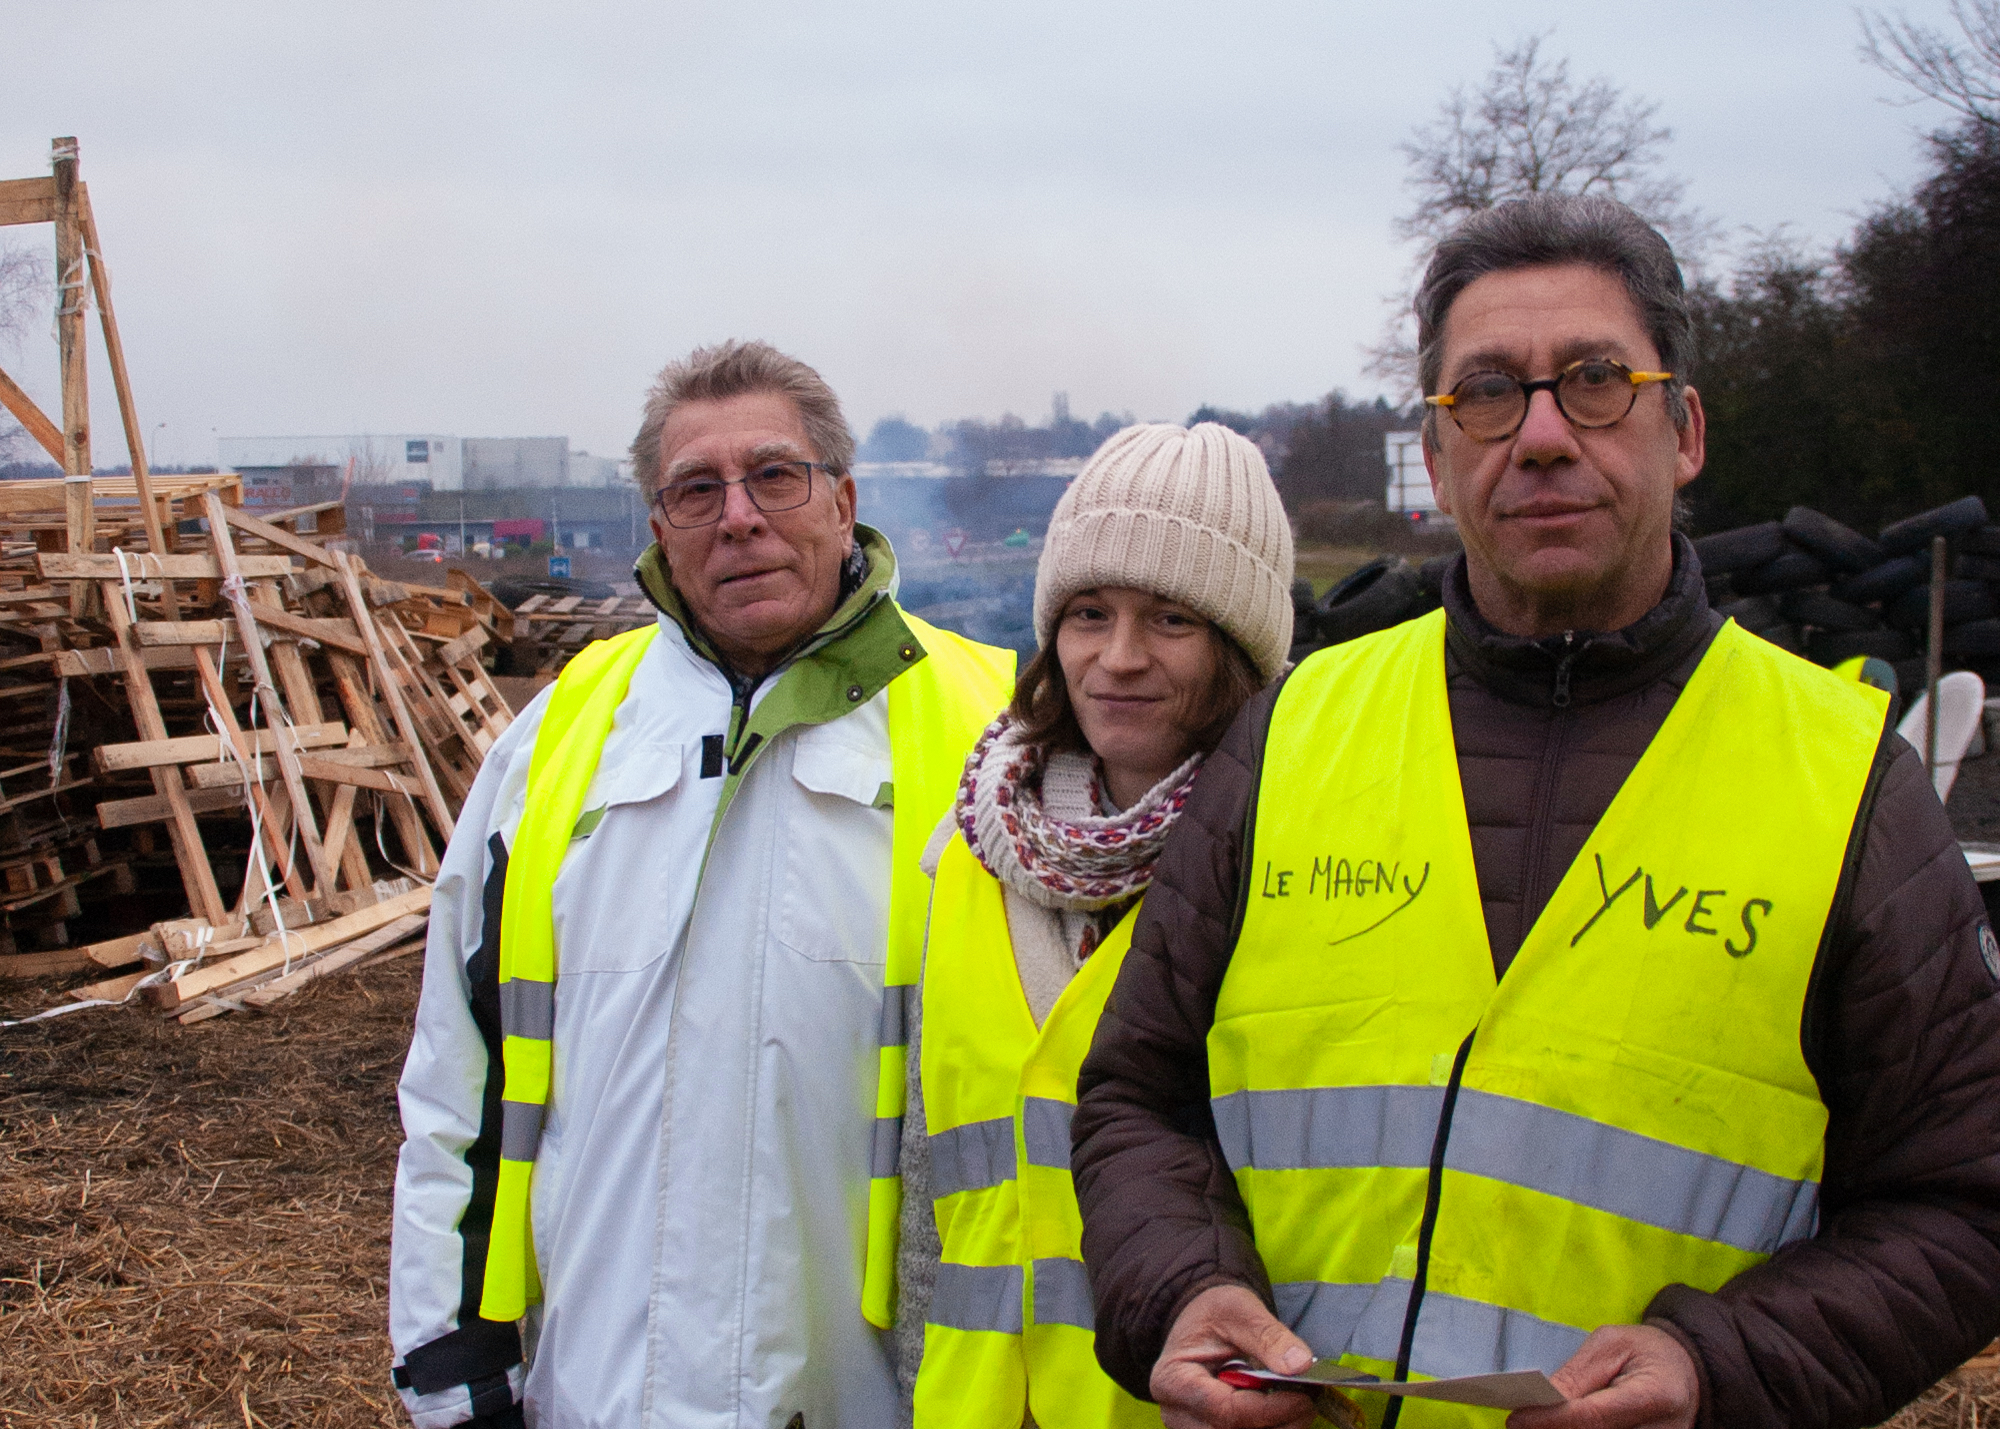 Three people in yellow vests stand and look at the camera